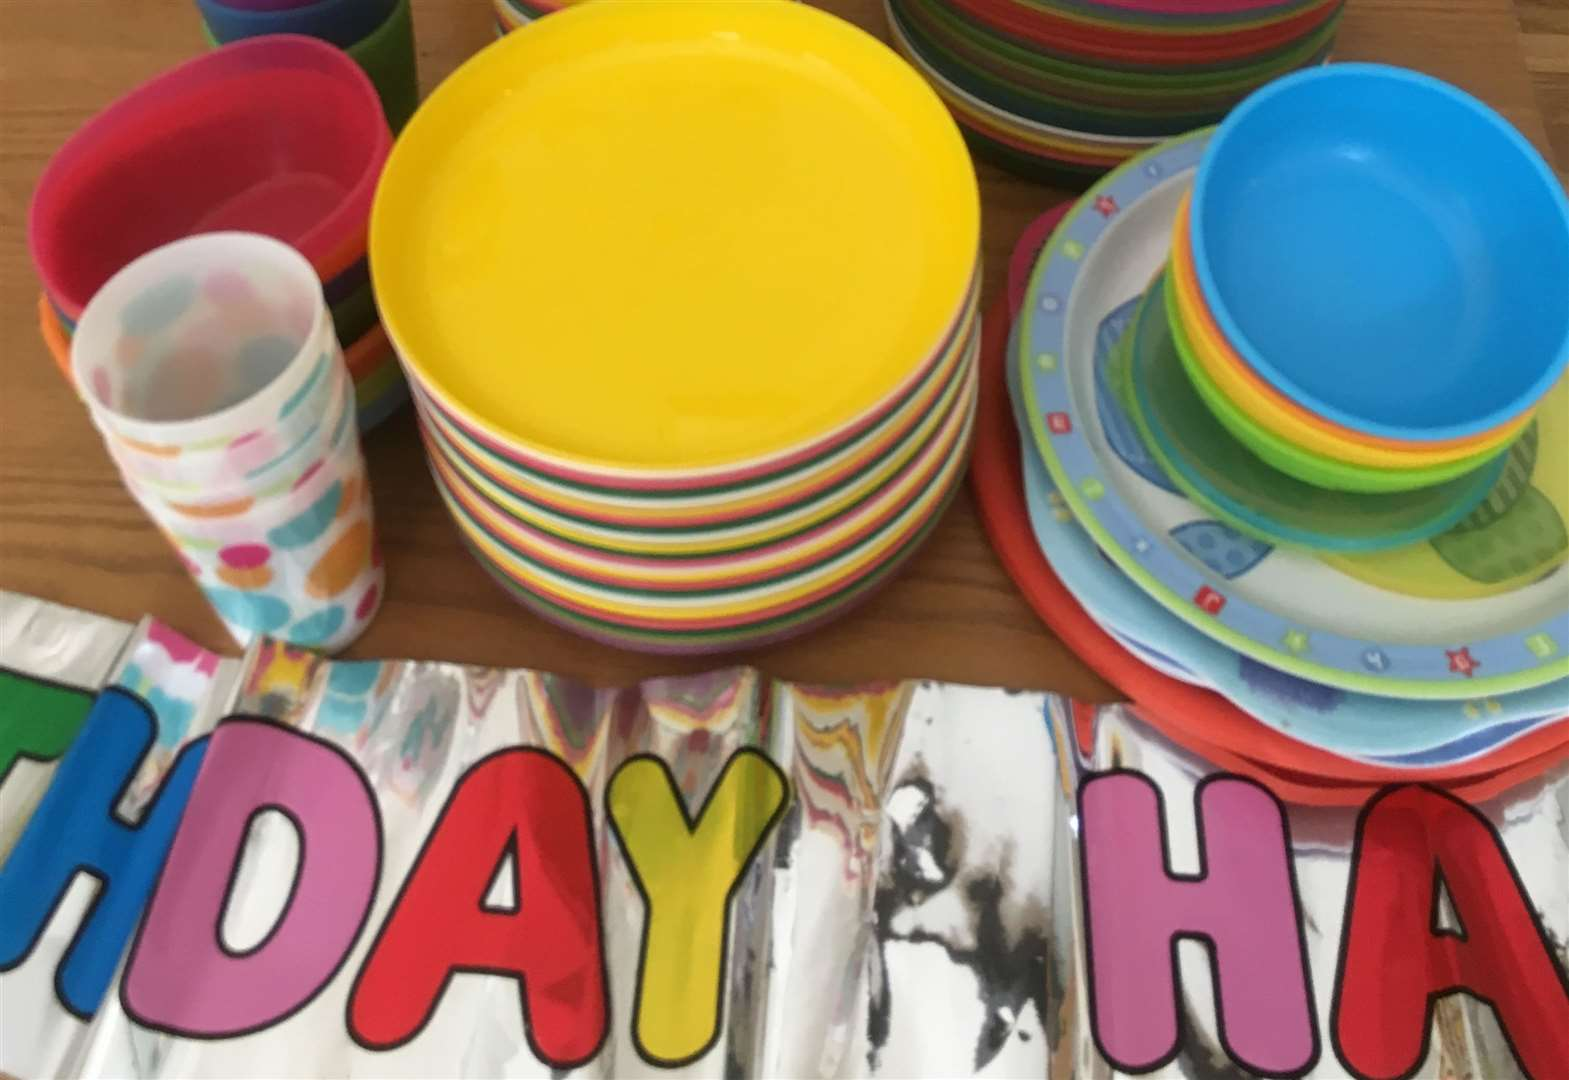 School launches 'party plate pack' in a bid to reduce plastic waste